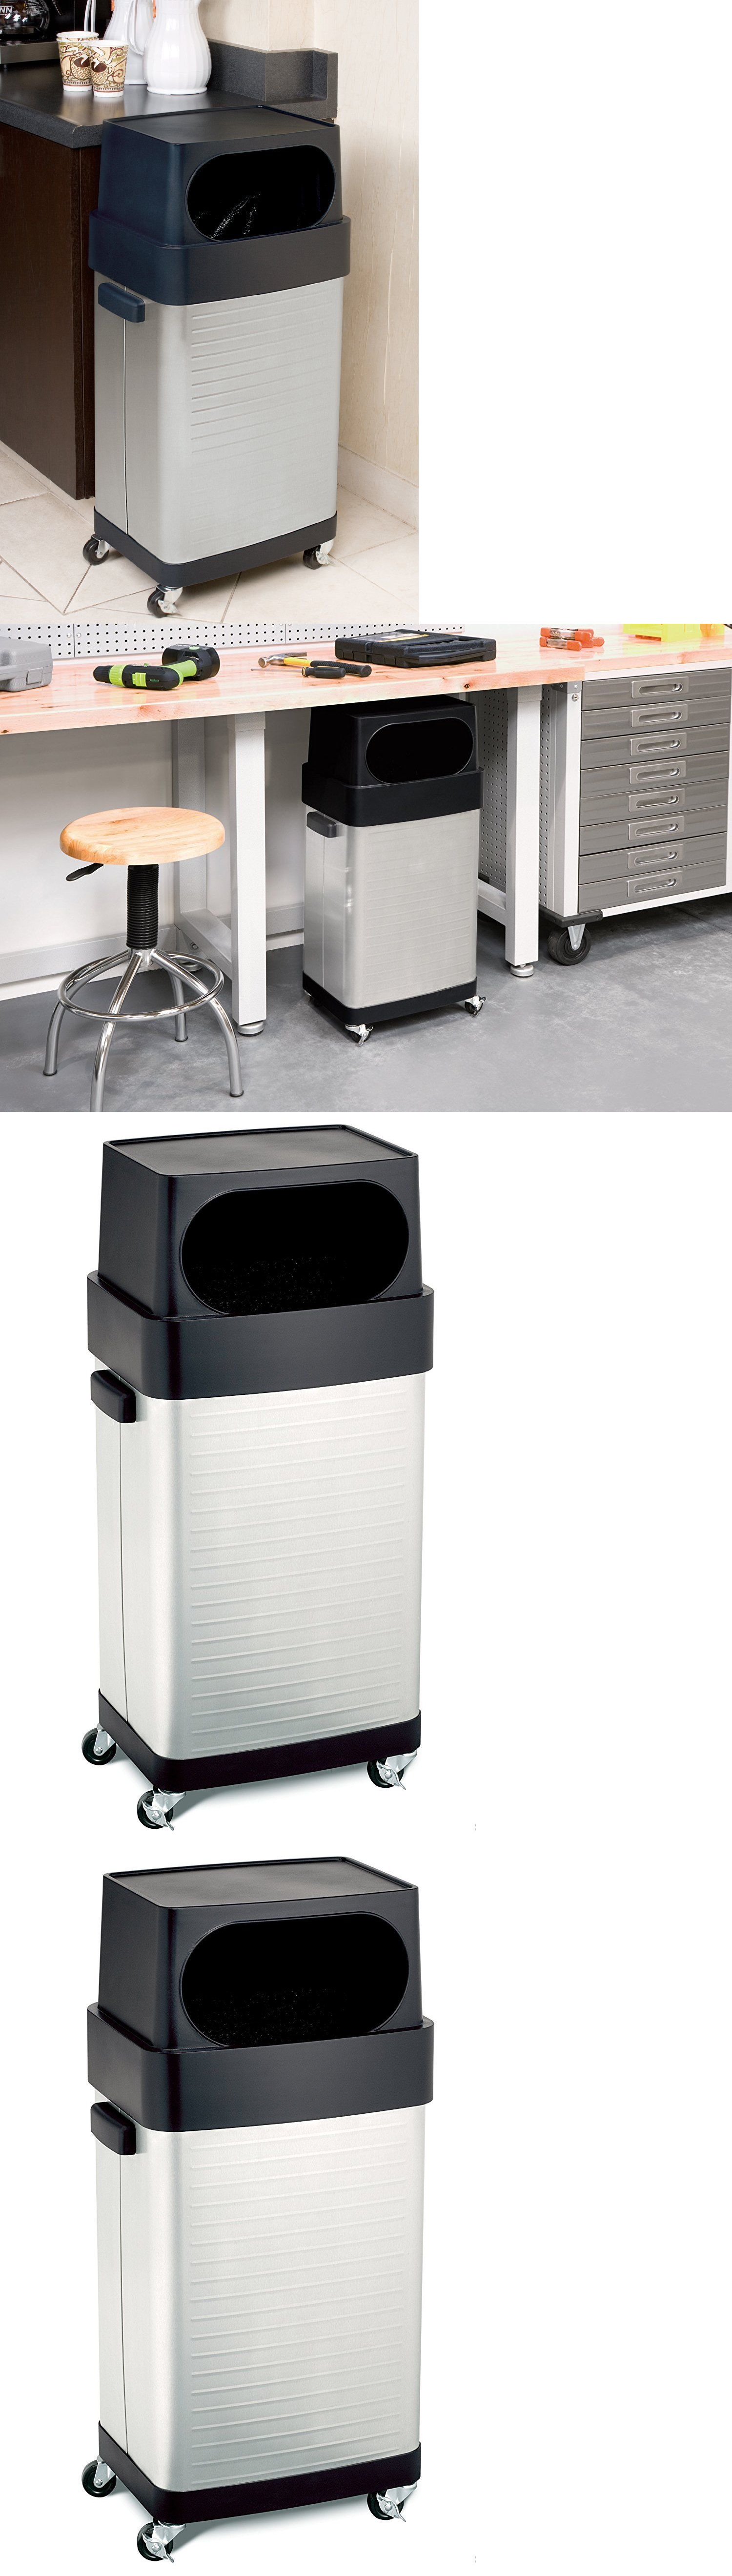 Trash Cans and Wastebaskets 20608: Rolling Trash Can Garbage Storage ...